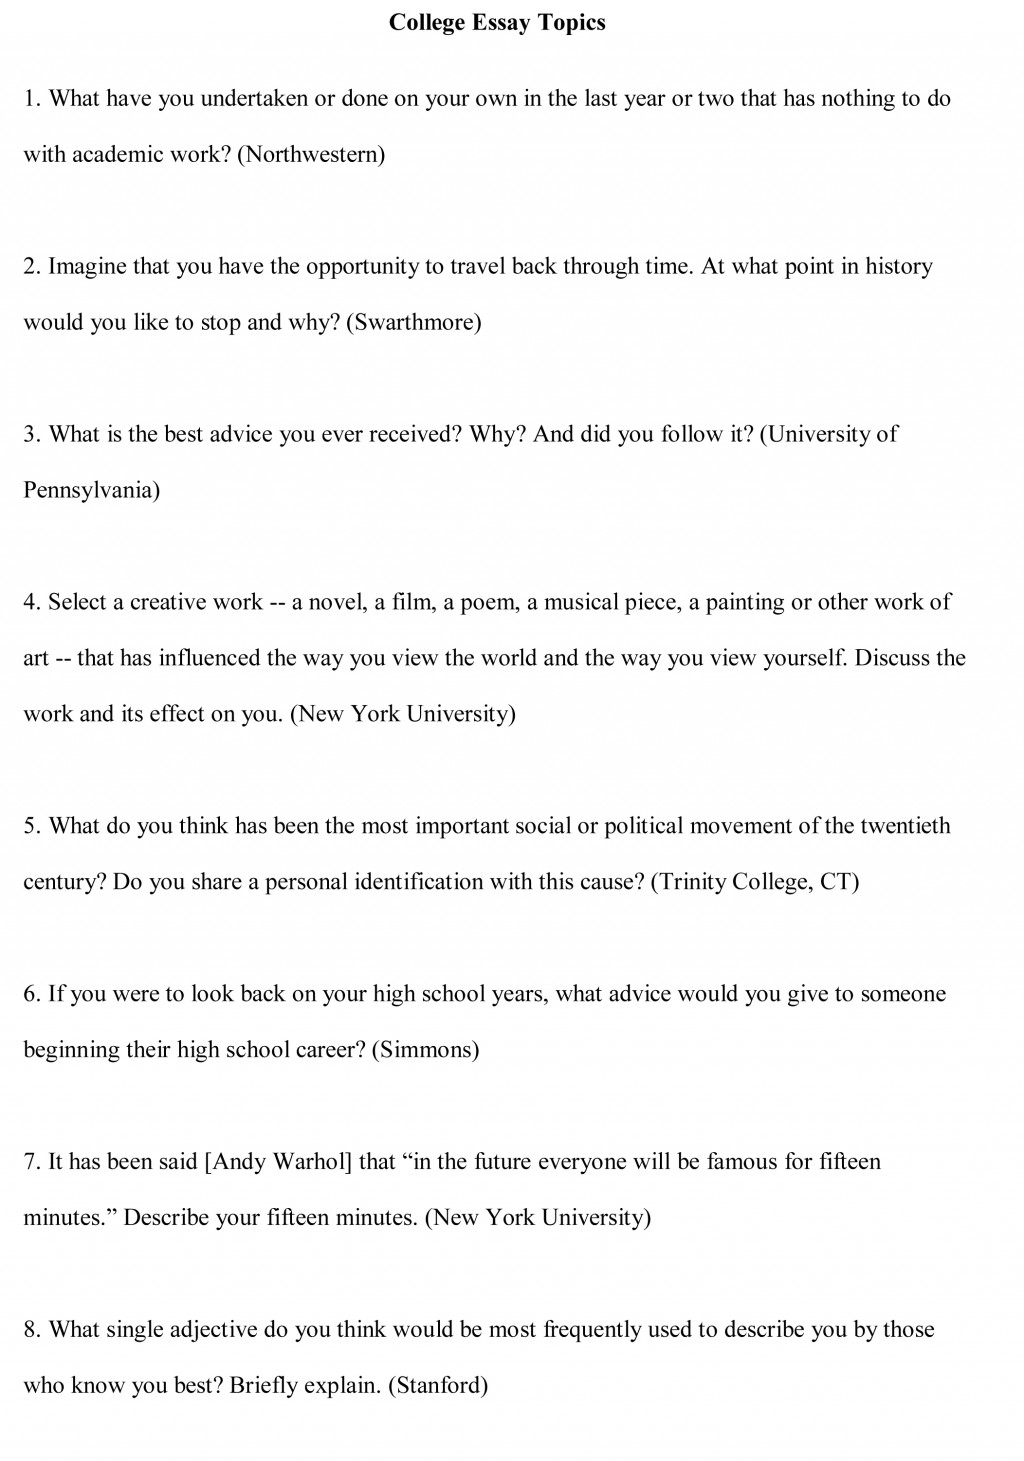 025 College Essay Topics Free Sample1 Prompts For Writing Essays Best Persuasive Opinion 4th Grade Large